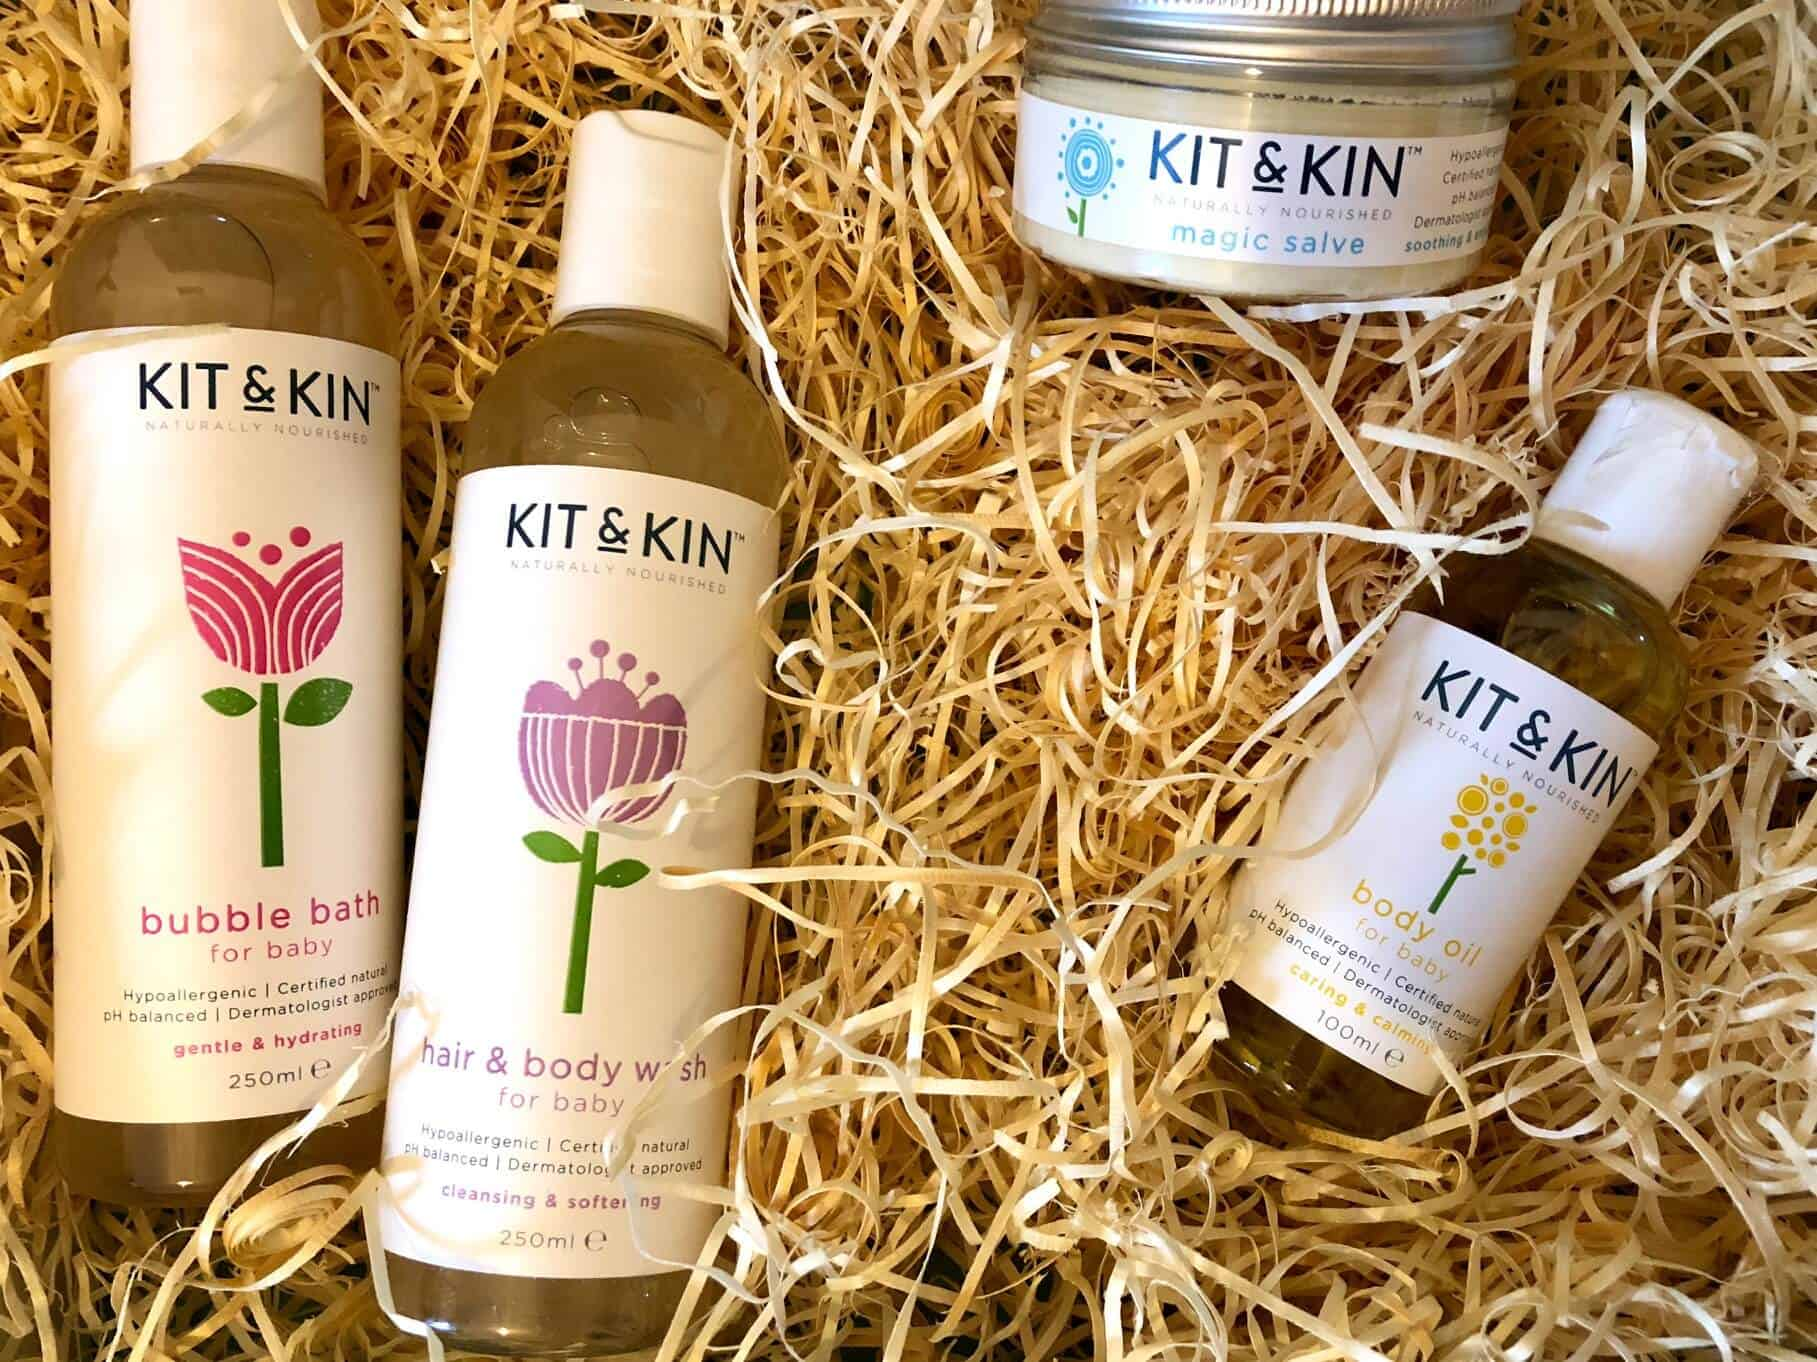 Looking for those perfect Christmas gifts for the family? Kit & Kin, the award-winning eco-friendly mother & baby brand co-founded by Emma Bunton, offers an amazing range of natural skincare products